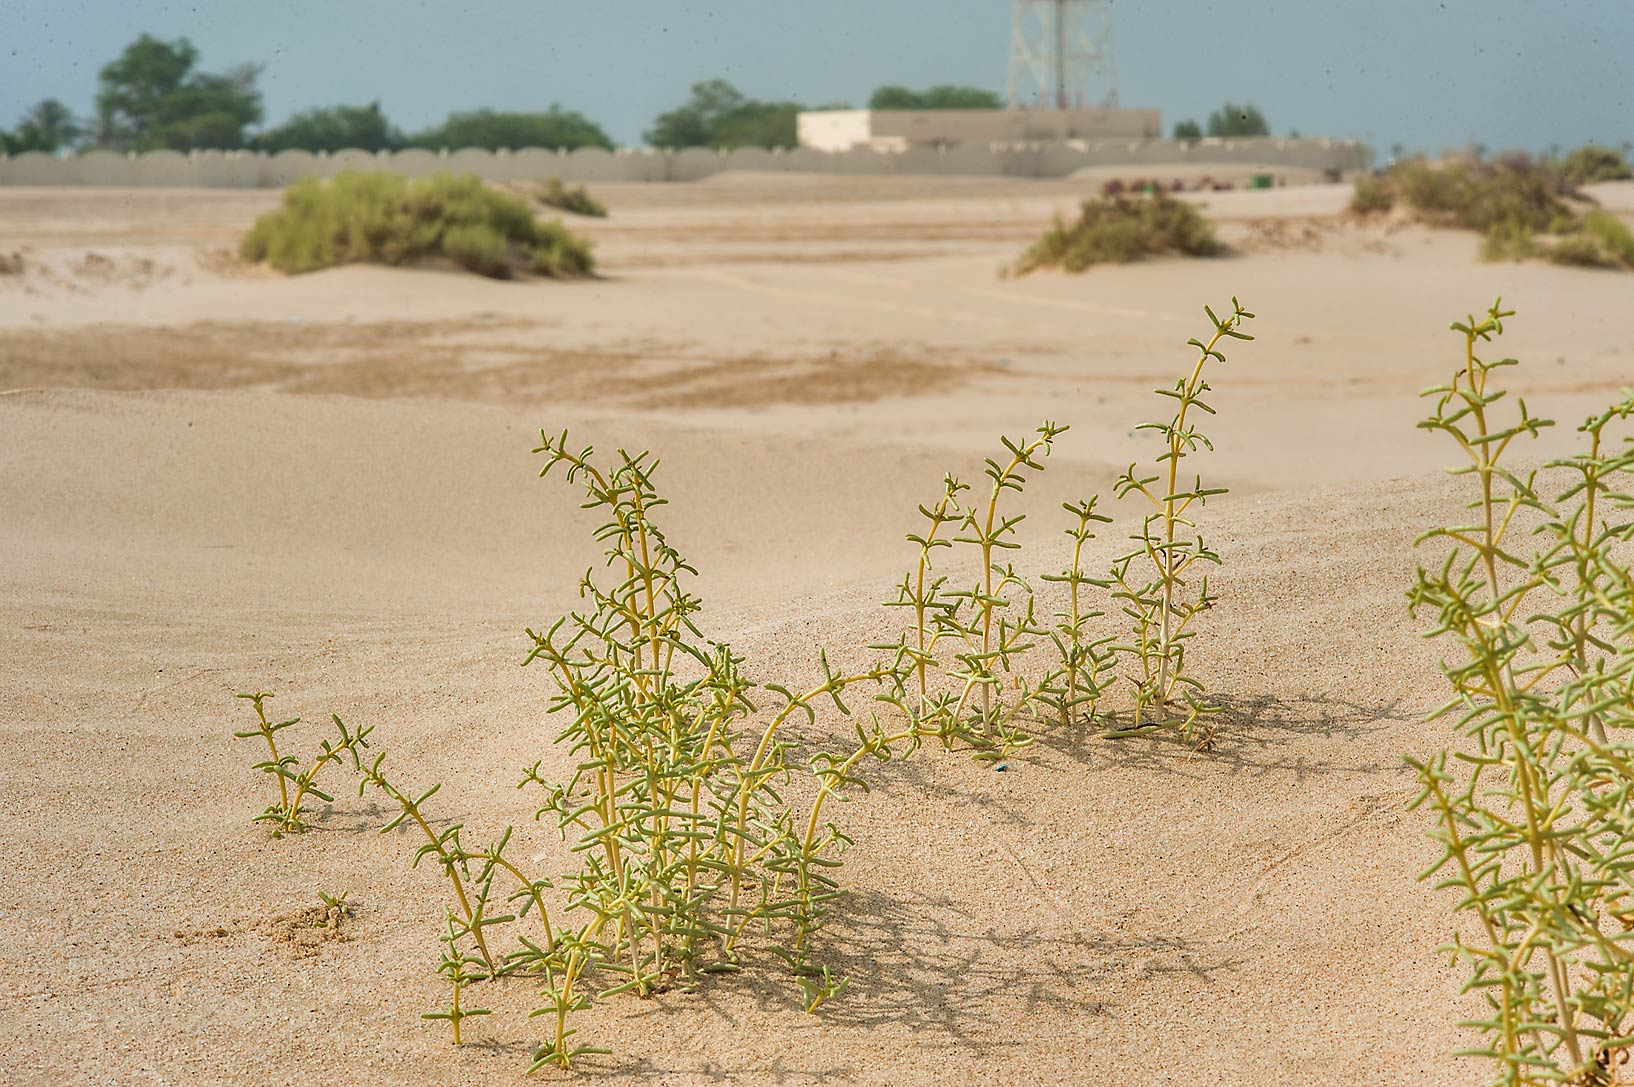 Seidlitzia rosmarinus in sand near Mesaieed, with...Resort in background. Southern Qatar